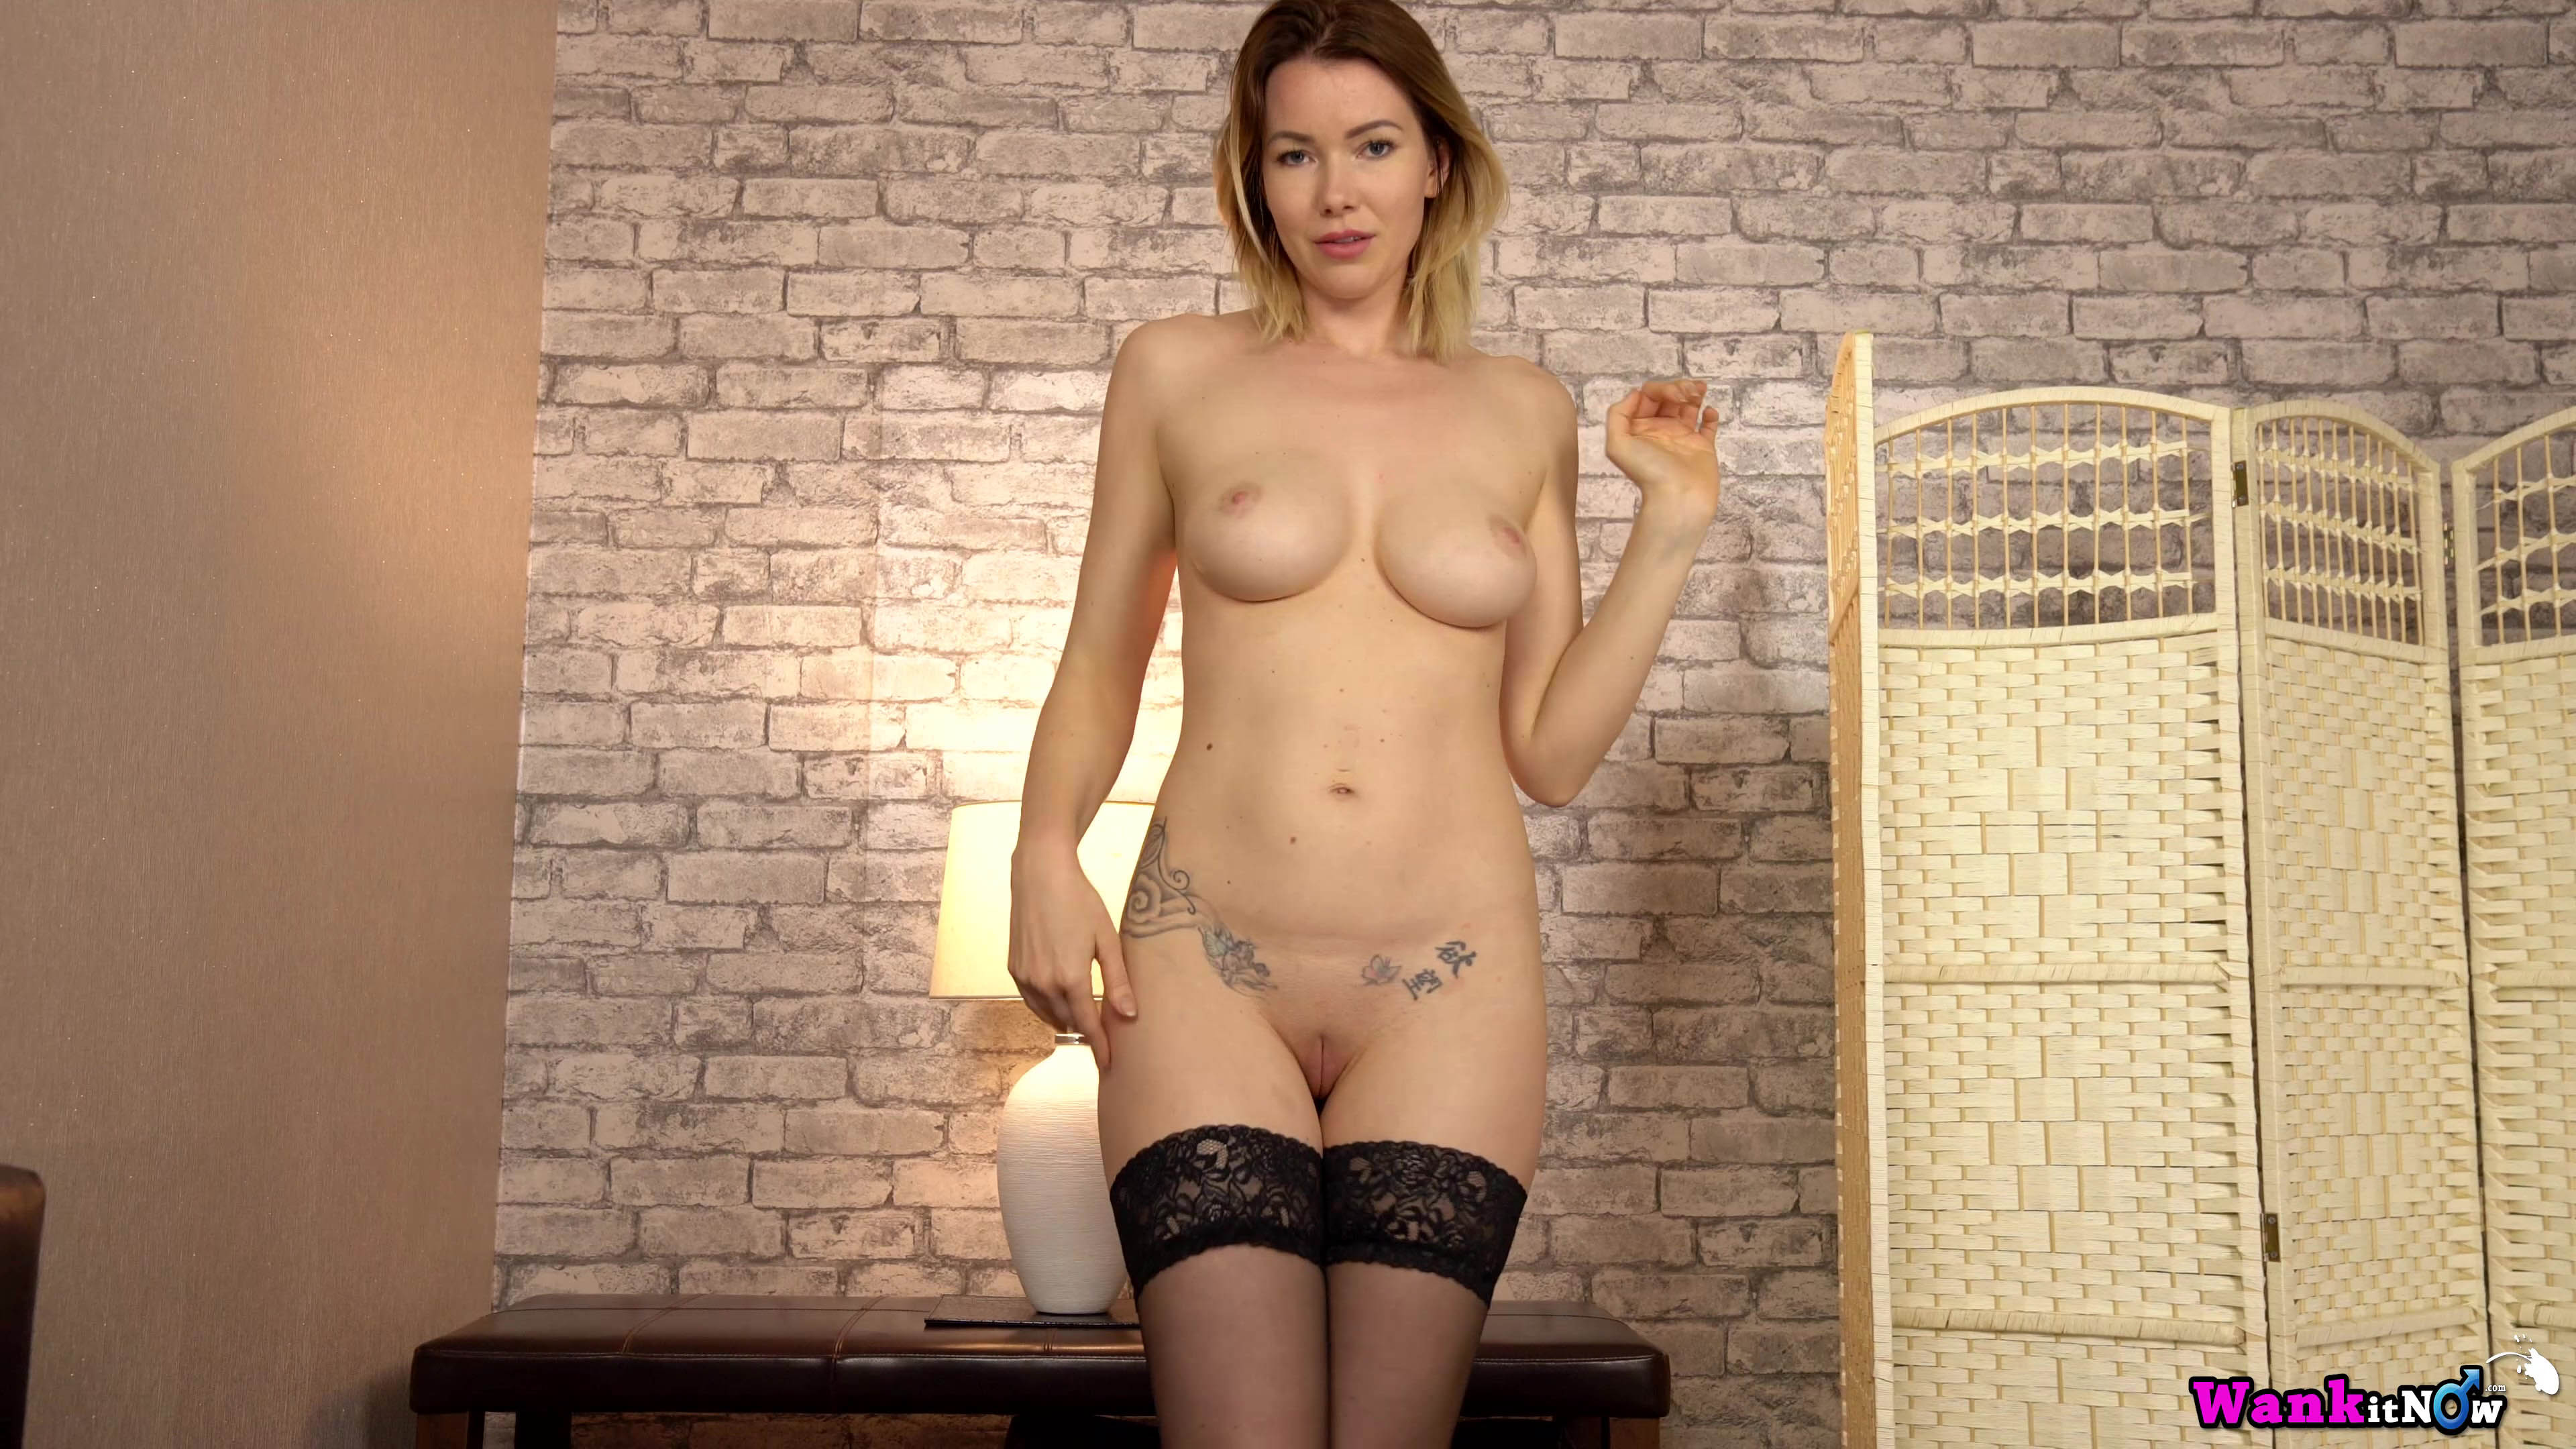 Hannah Z - Cock Service - Free photos of naked girls from ...